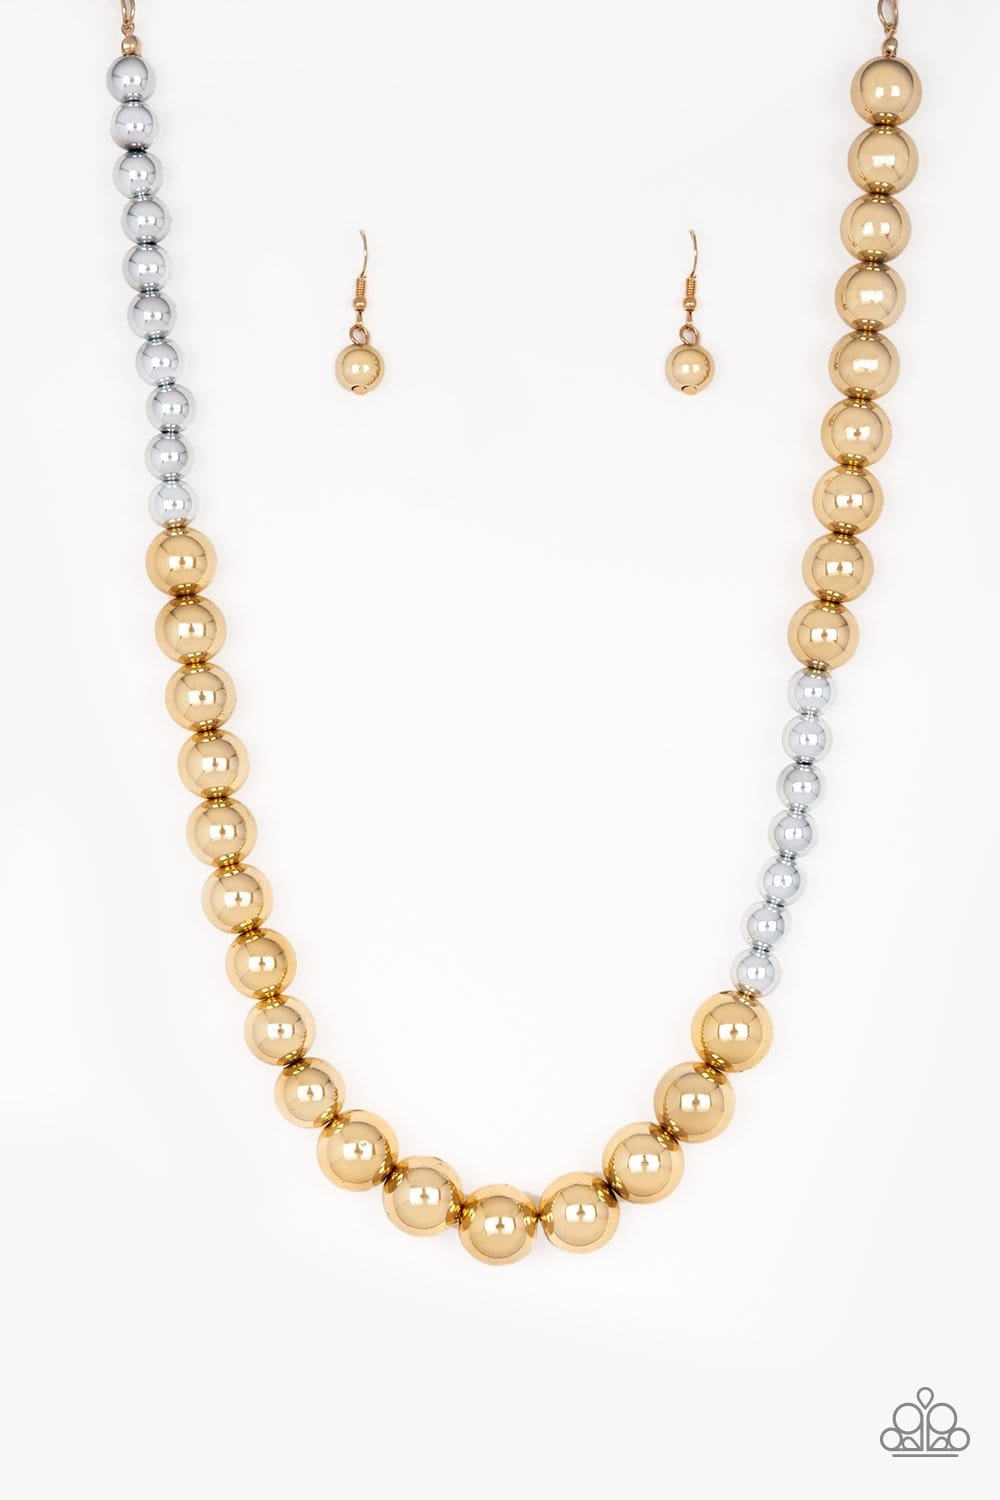 Power To The People - Gold - Jewels N' Thingz Boutique